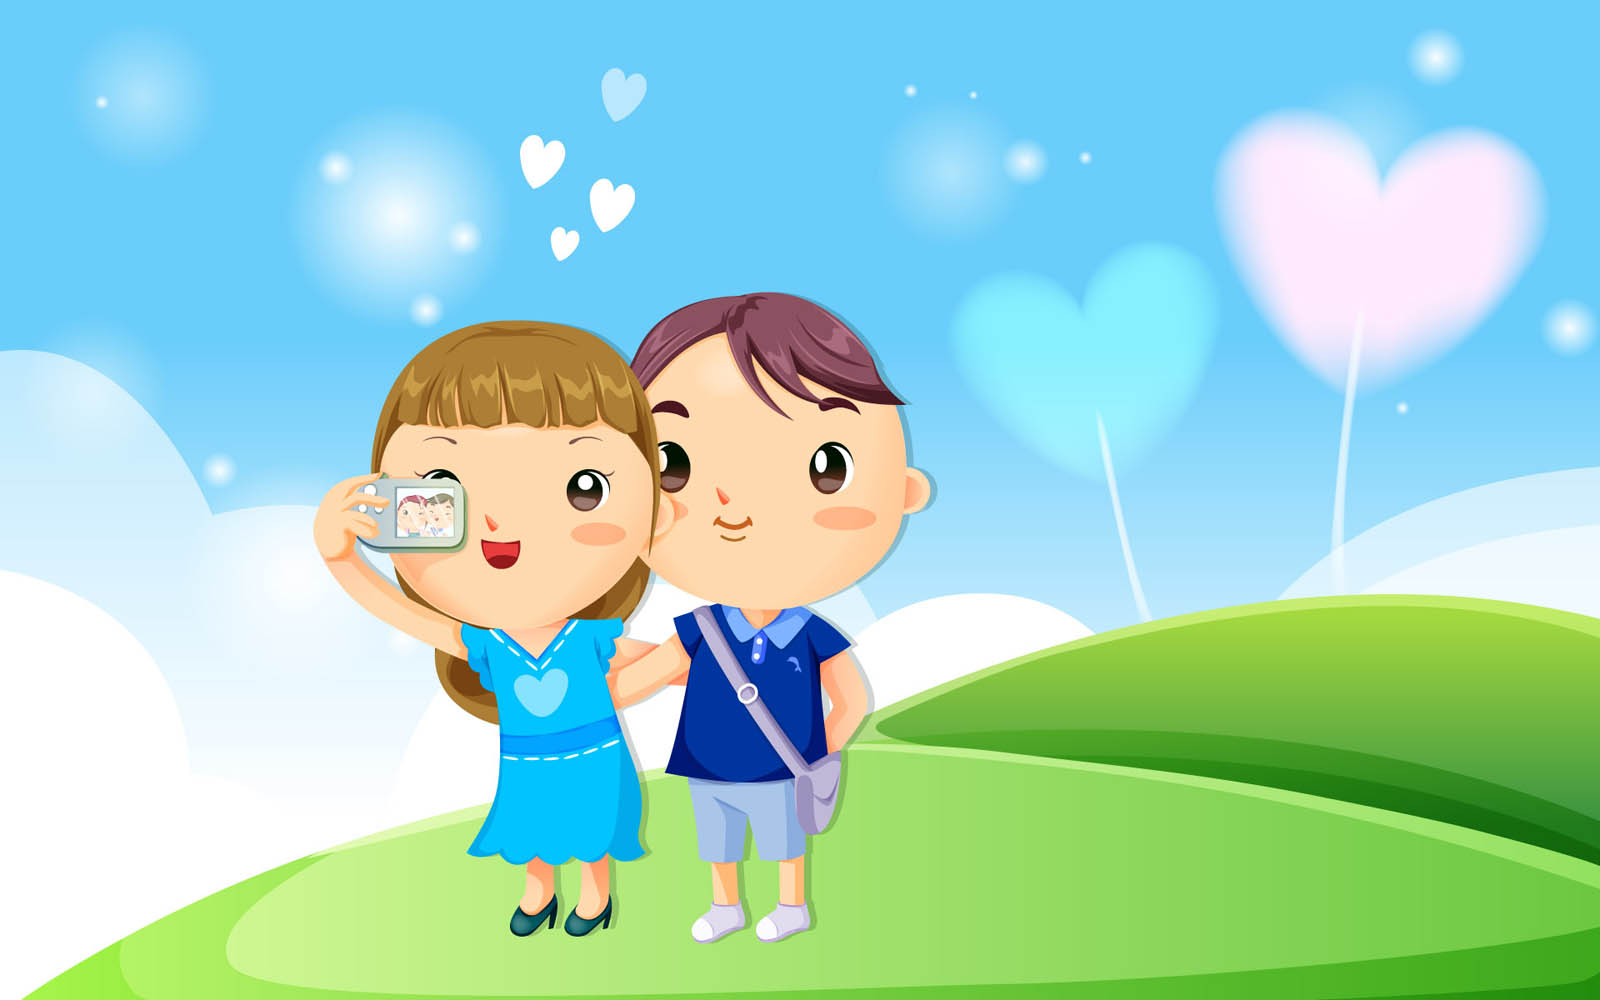 Love cartoon Live Wallpaper : wallpapers: cartoon Love Wallpapers